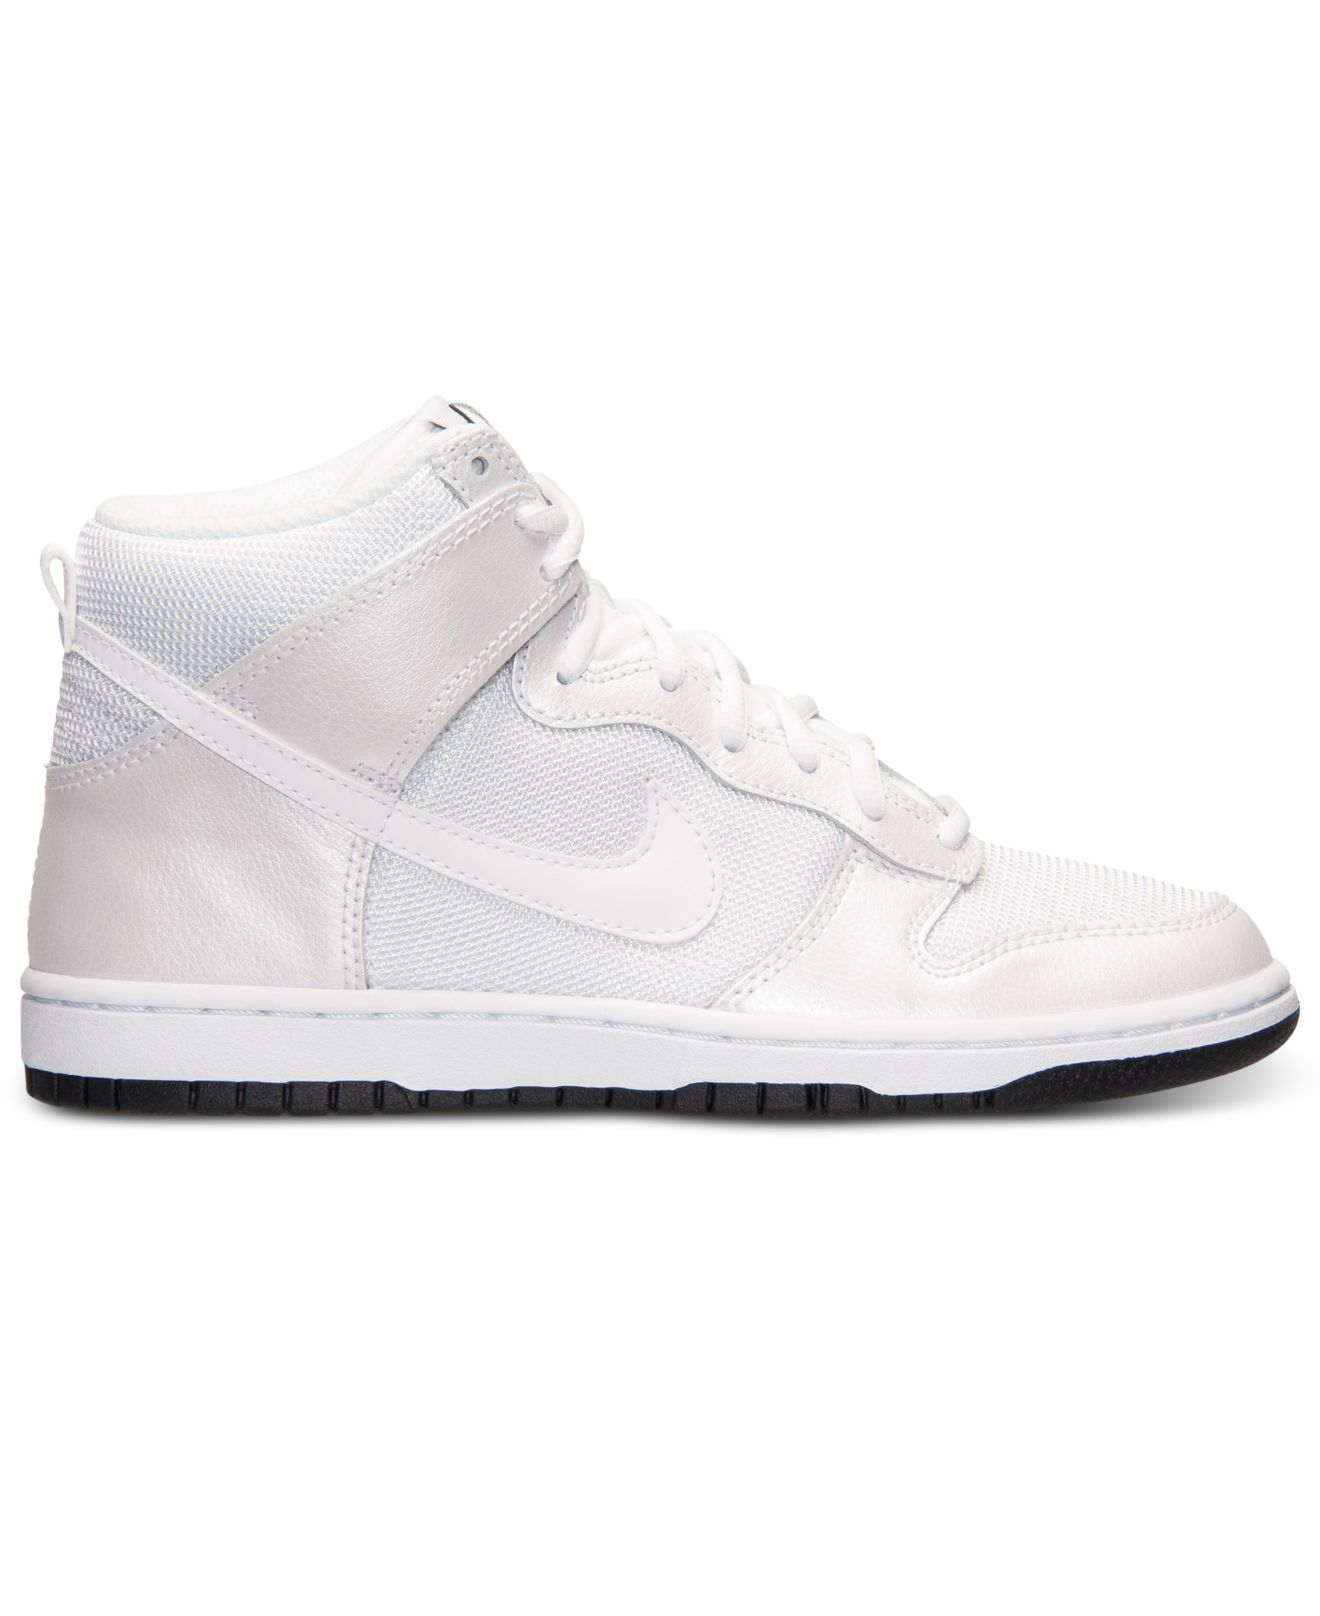 100% authentic b8f6a 2a4b2 Nike Women s Dunk High Skinny Casual Sneakers From Finish Line in ...